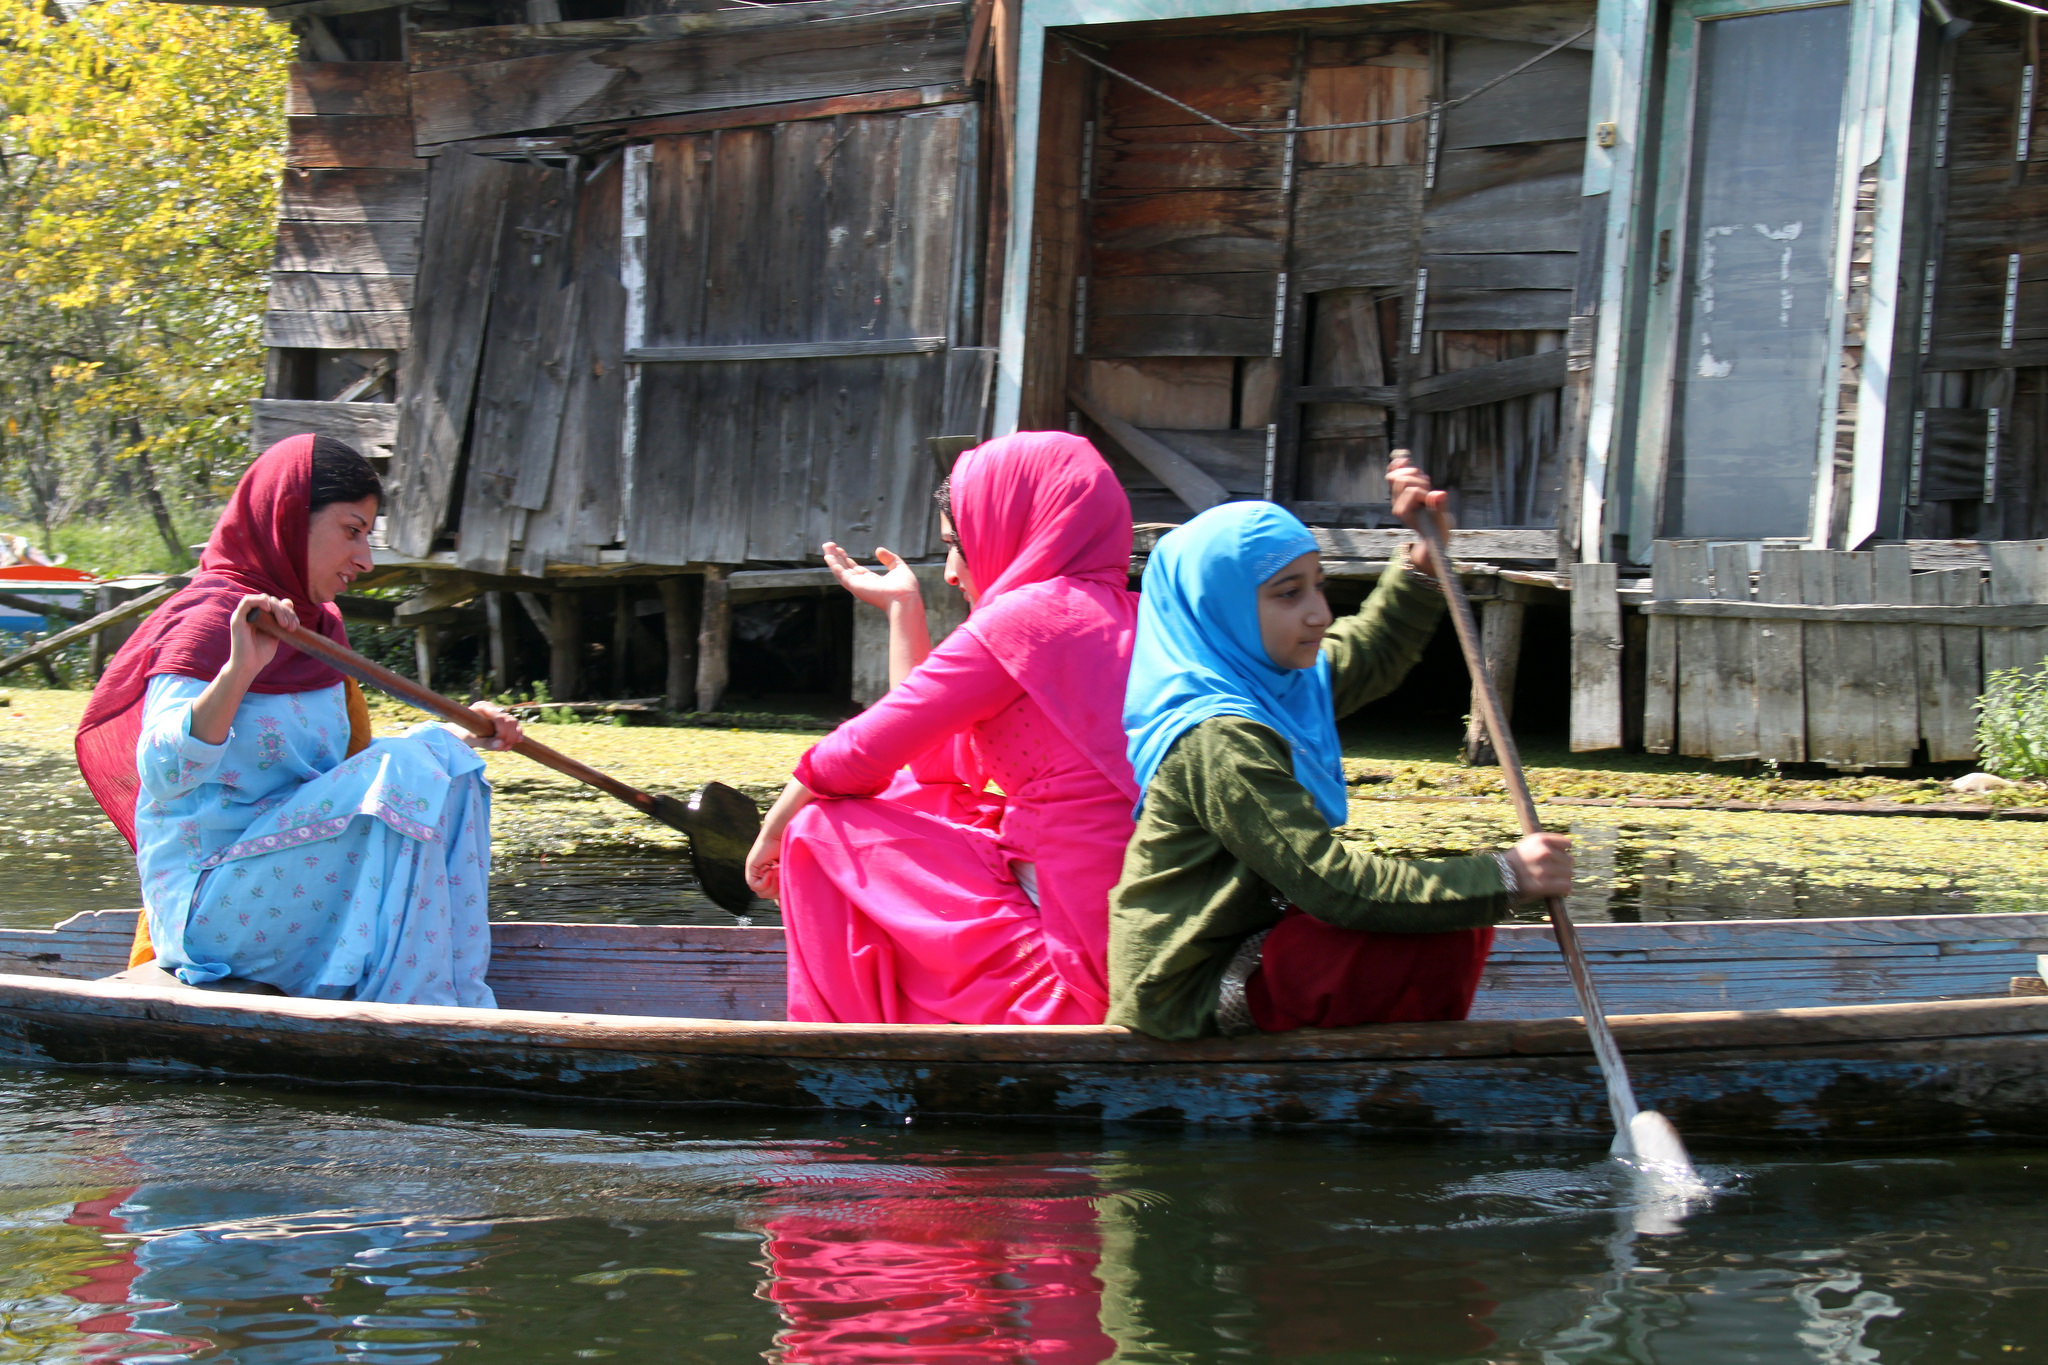 Kashmiri women chat on a boat on Dal Lake. Credit: flowcomm/Flickr CC BY 2.0